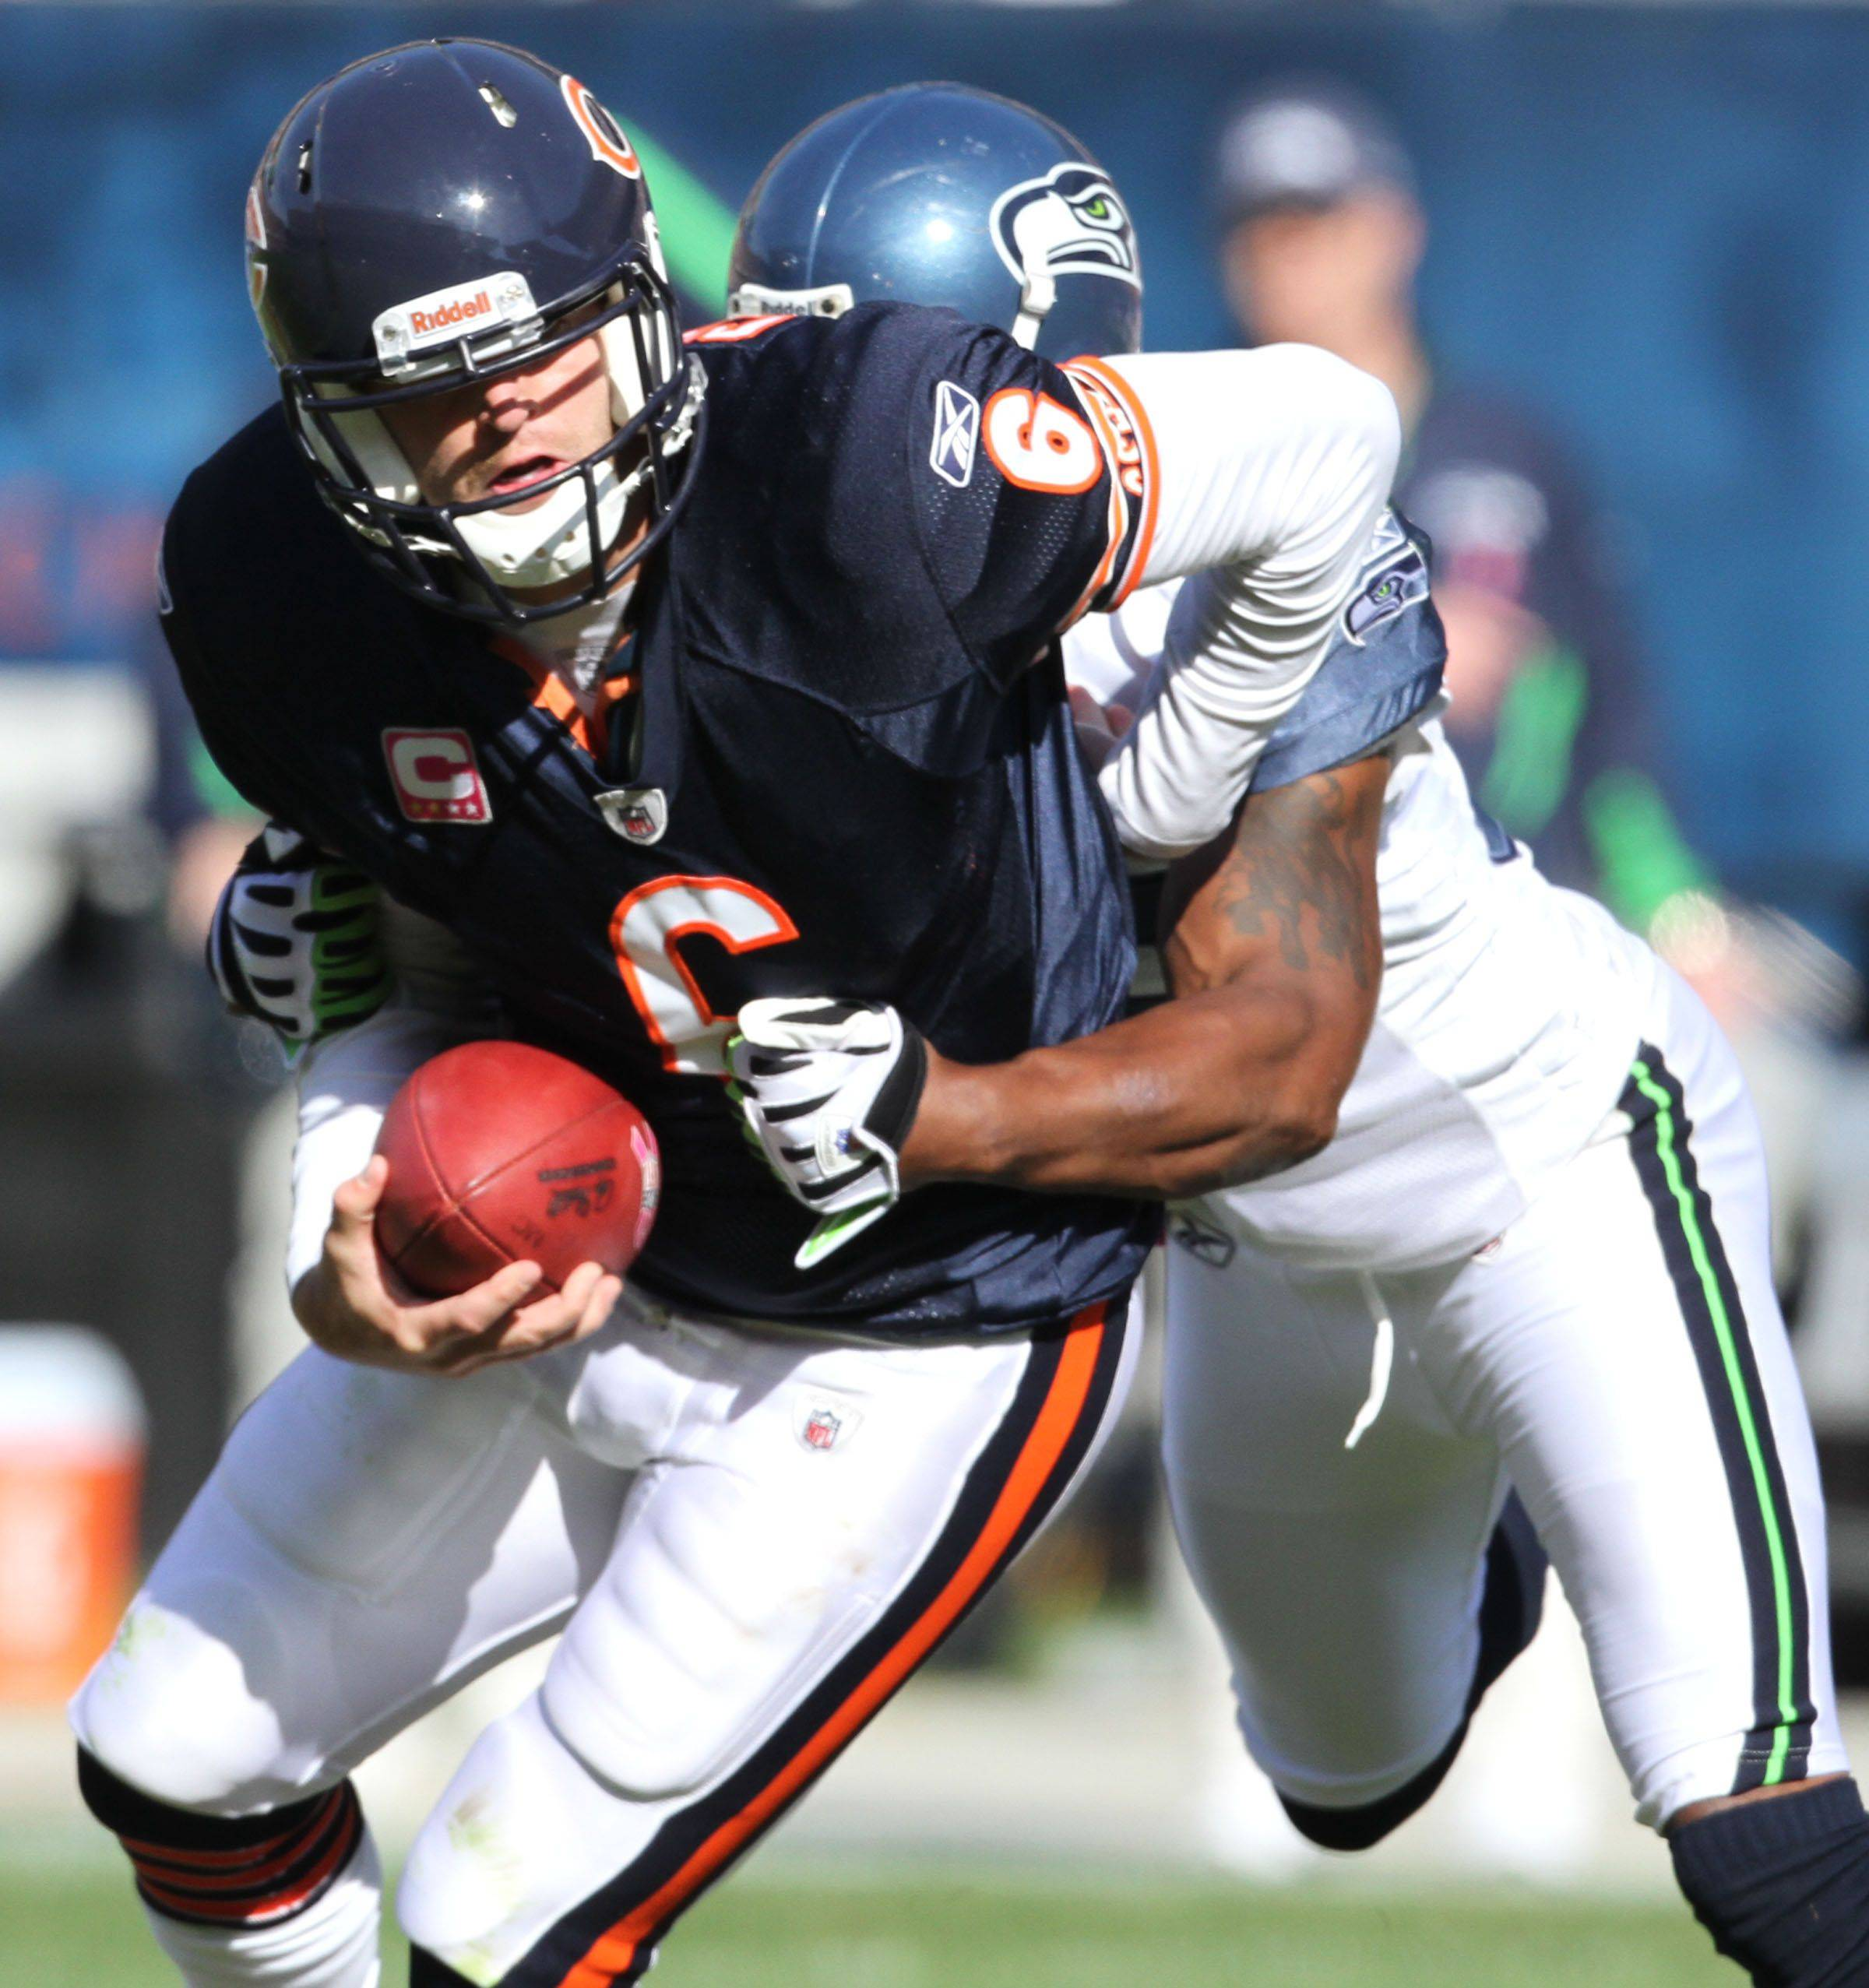 Chicago Bears' Chicago Bears quarterback Jay Cutler is sacked by Seattle Seahawks' safety Lawyer Milloy in the second half in 23-20 lose at Soldier Field in Chicago on Sunday, October 17.